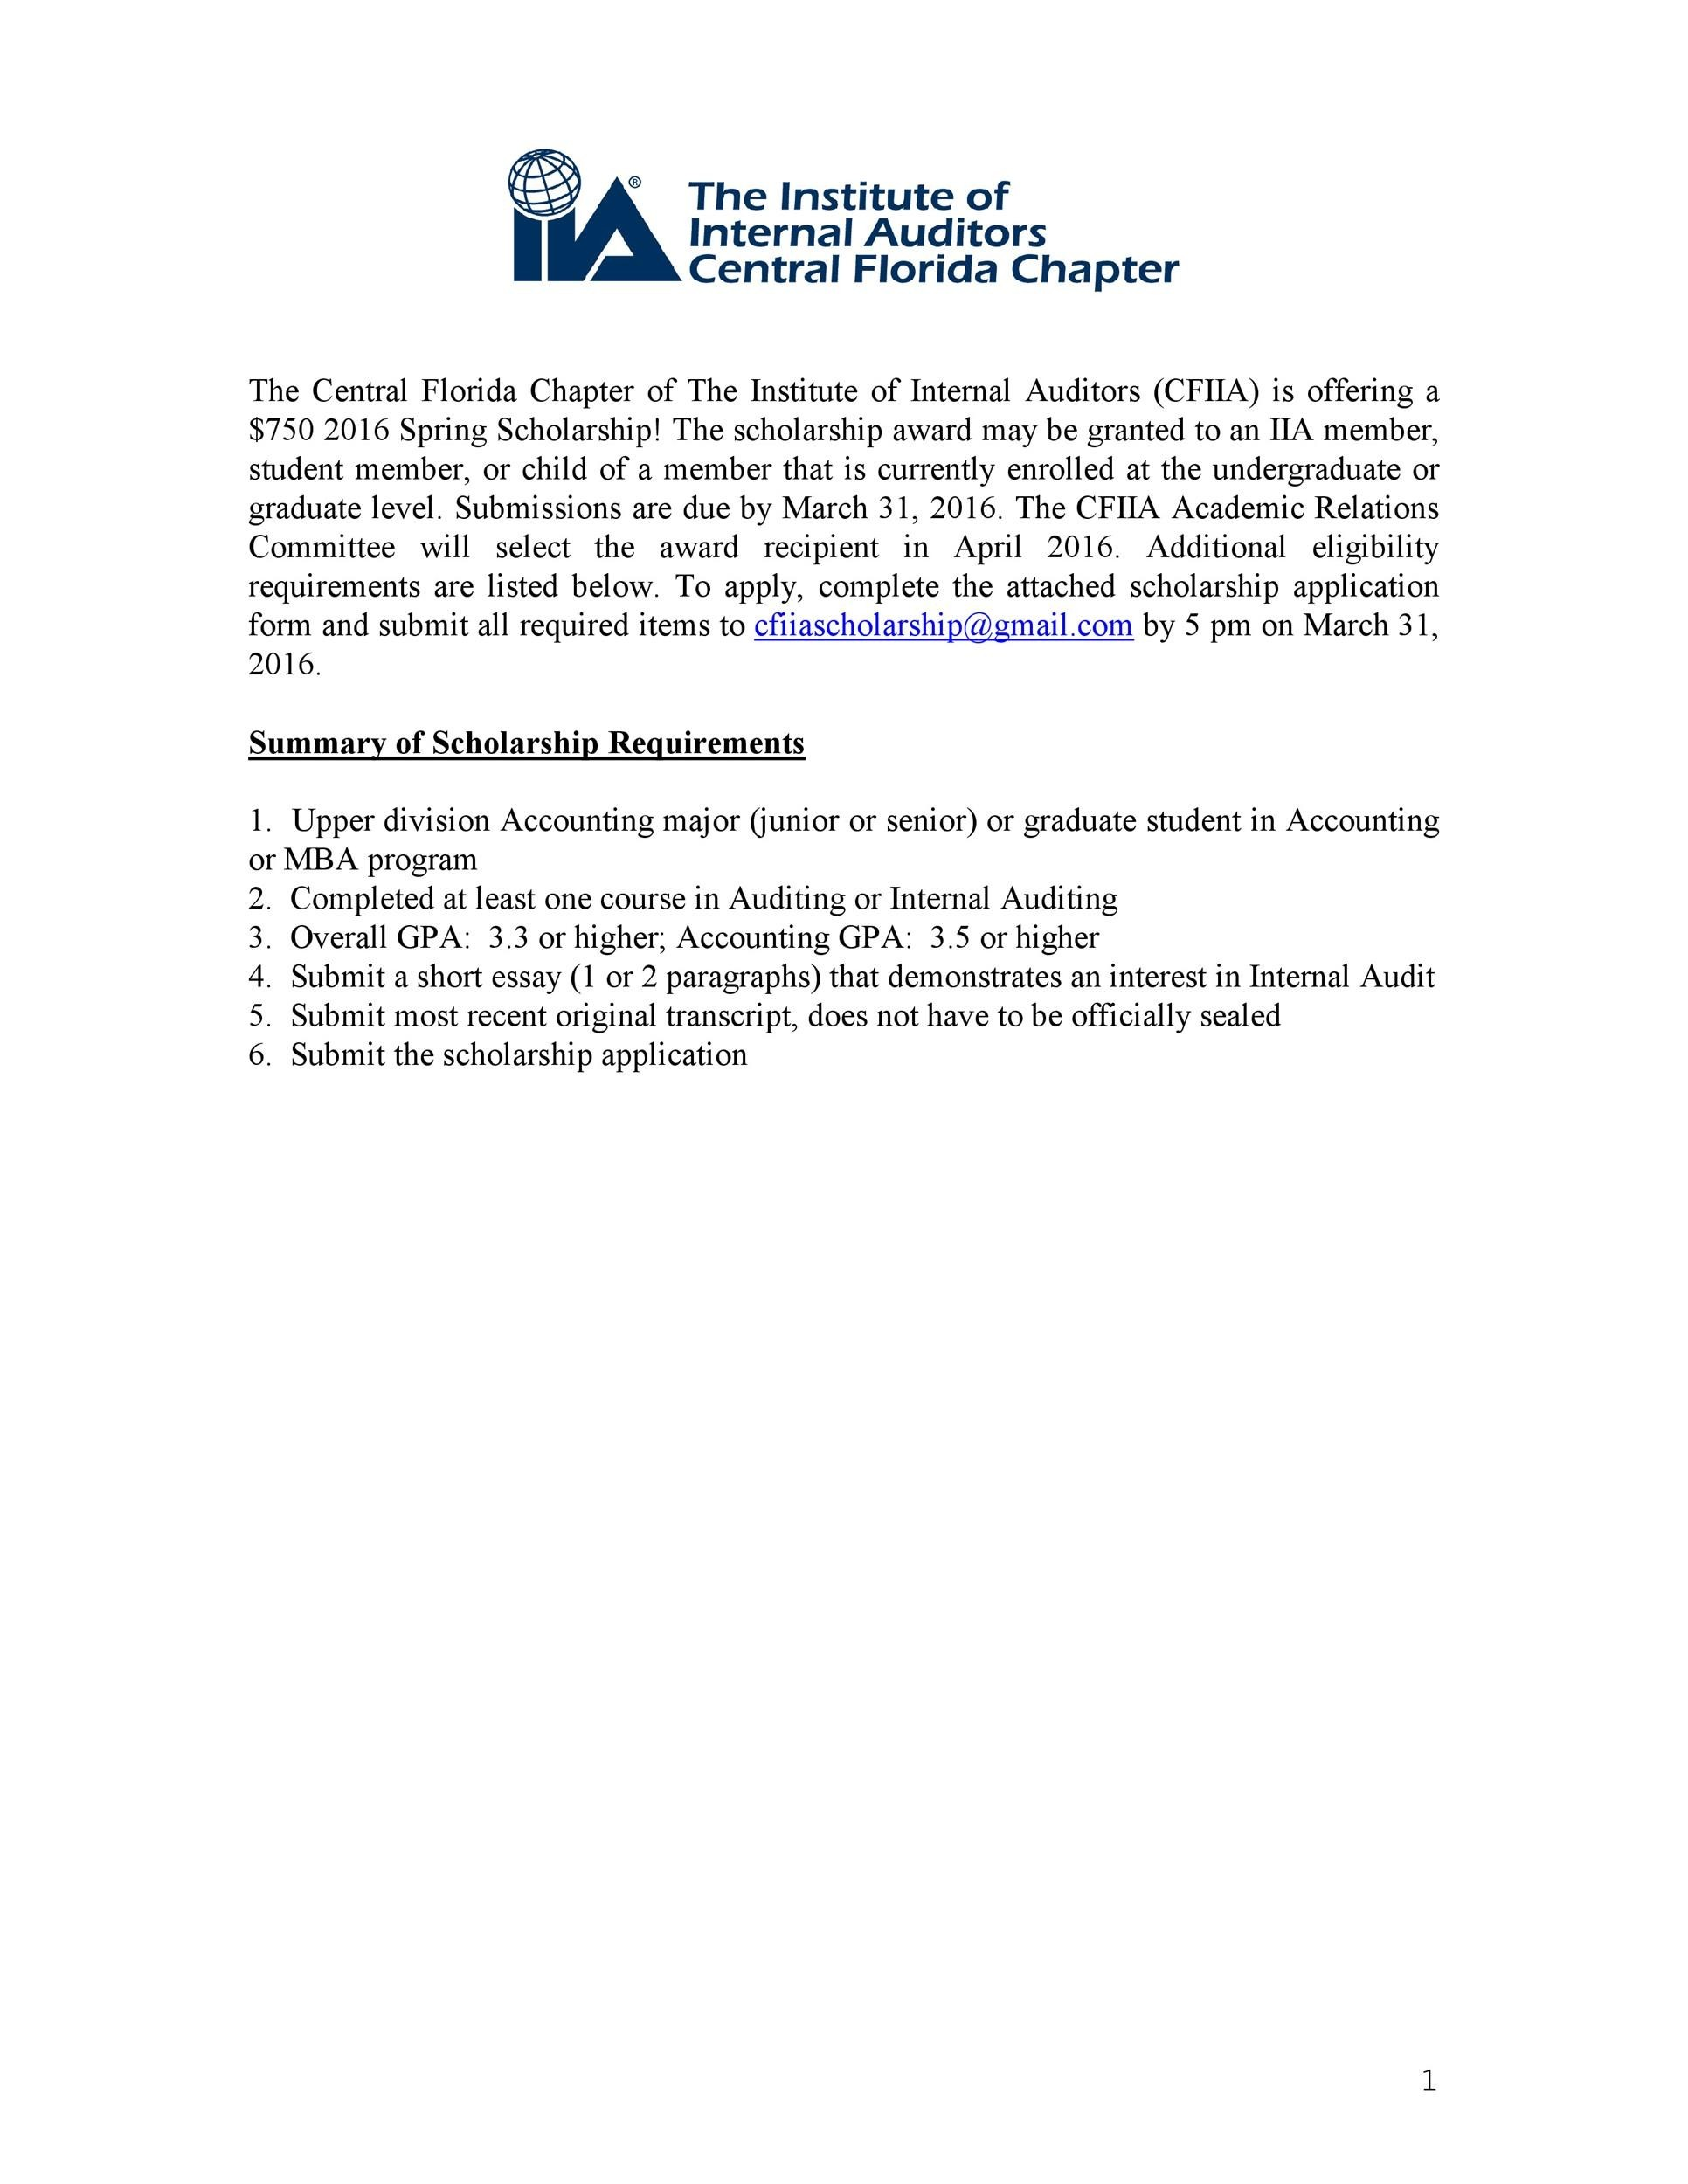 Free Scholarship Application Template 10